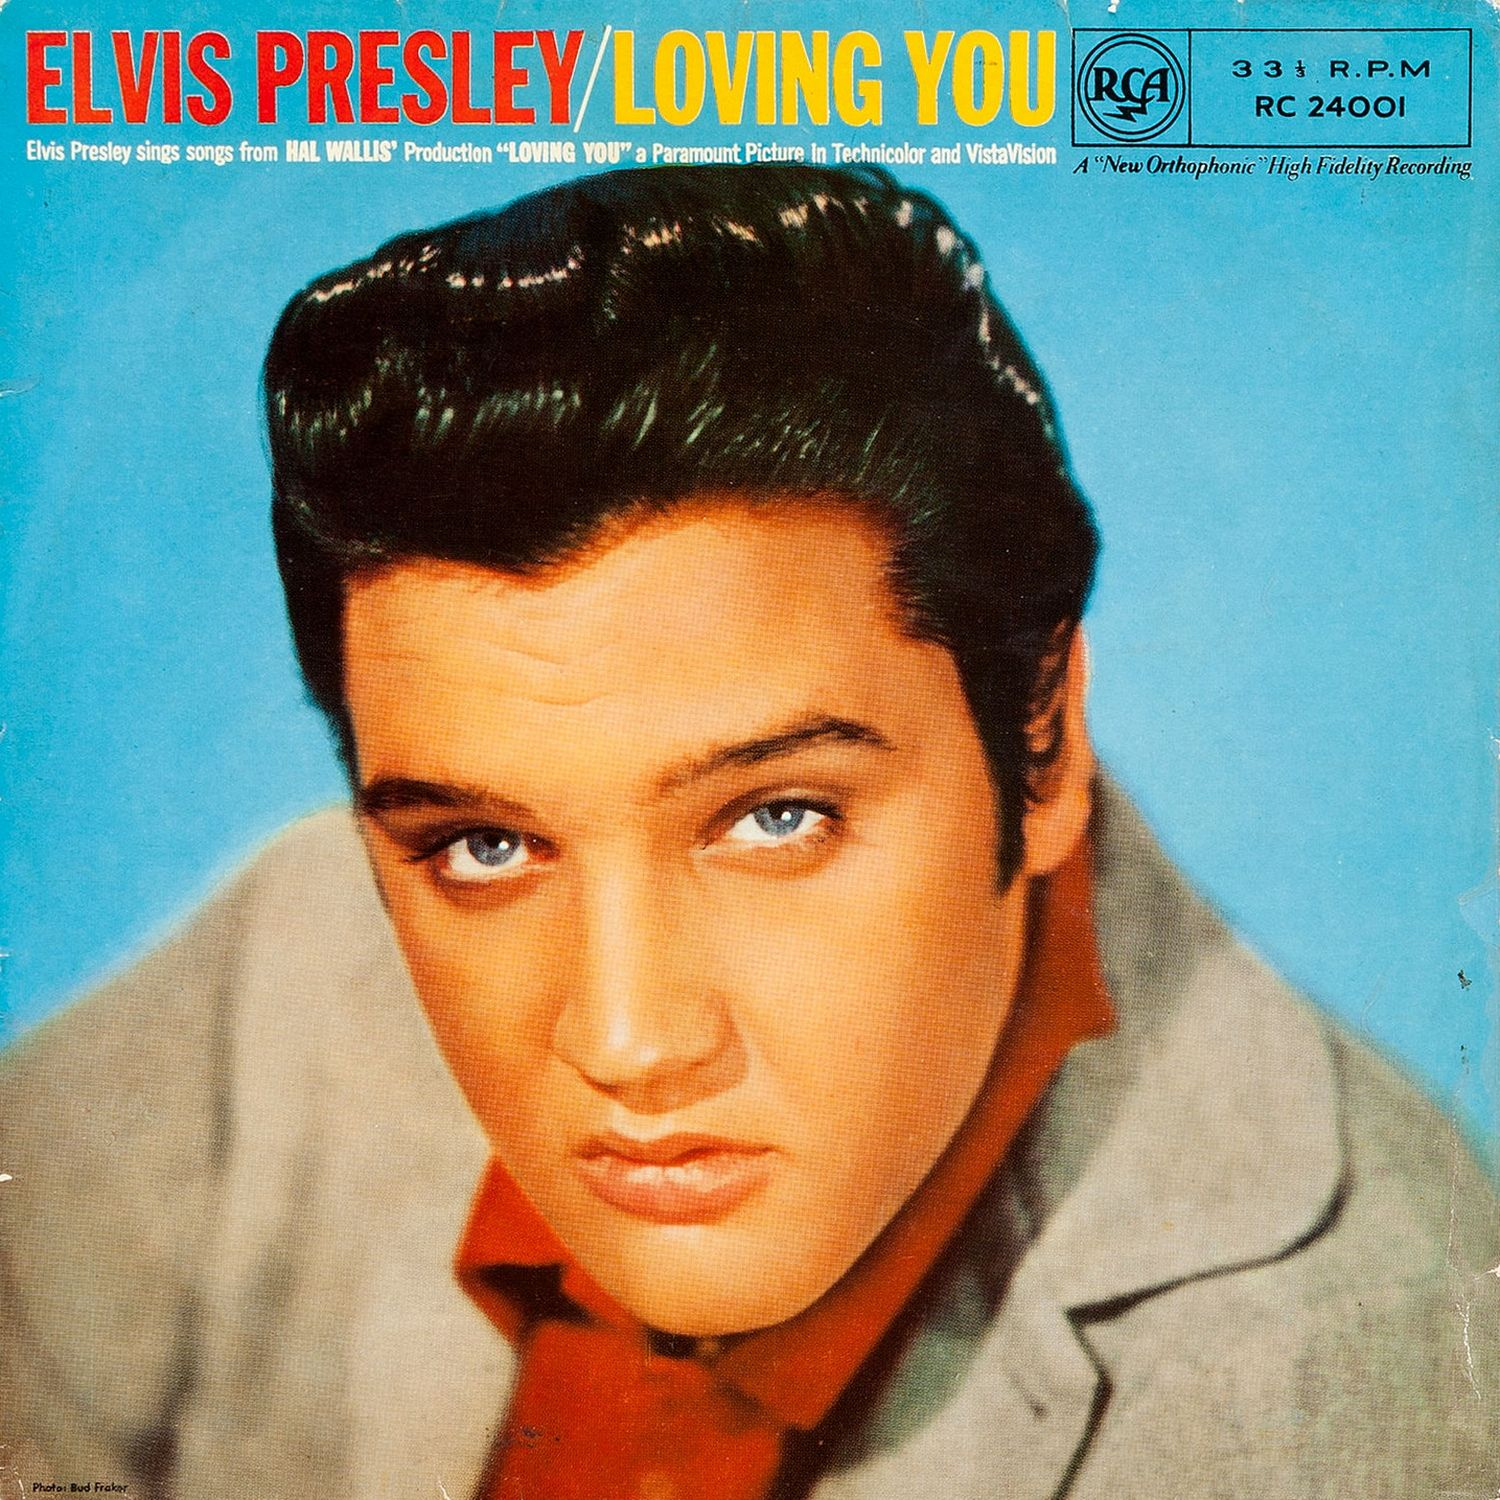 Loving You (UK, August 1957, RC 24001) 01